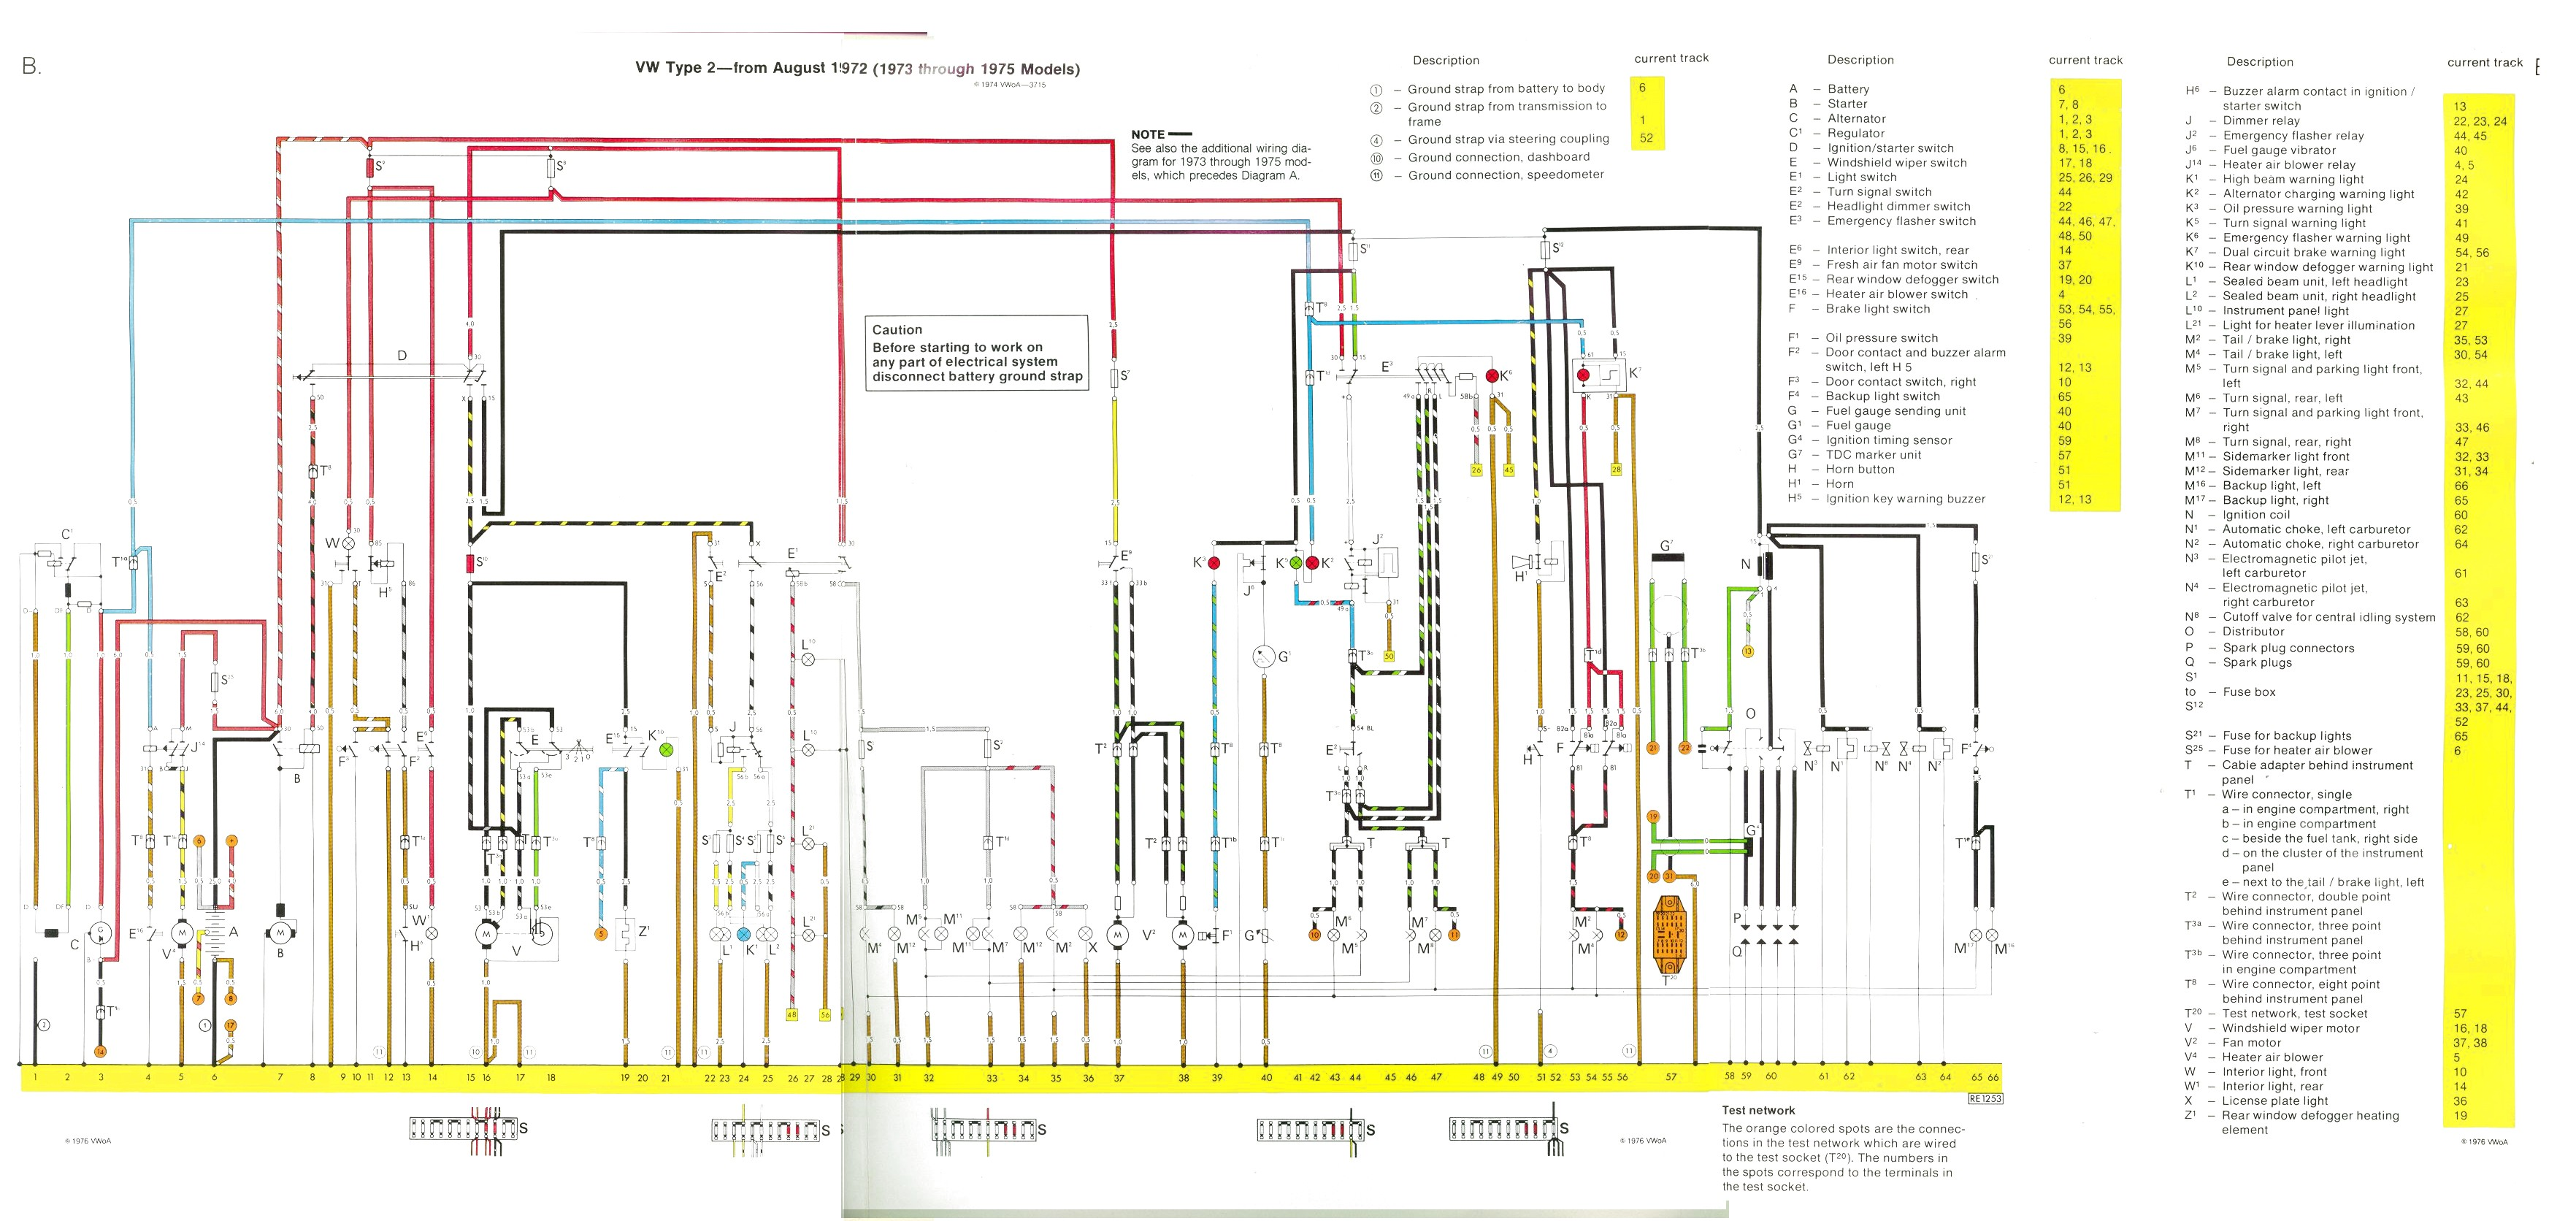 bus 73 75 vw wiring diagrams 1973 vw beetle wiring diagram at n-0.co